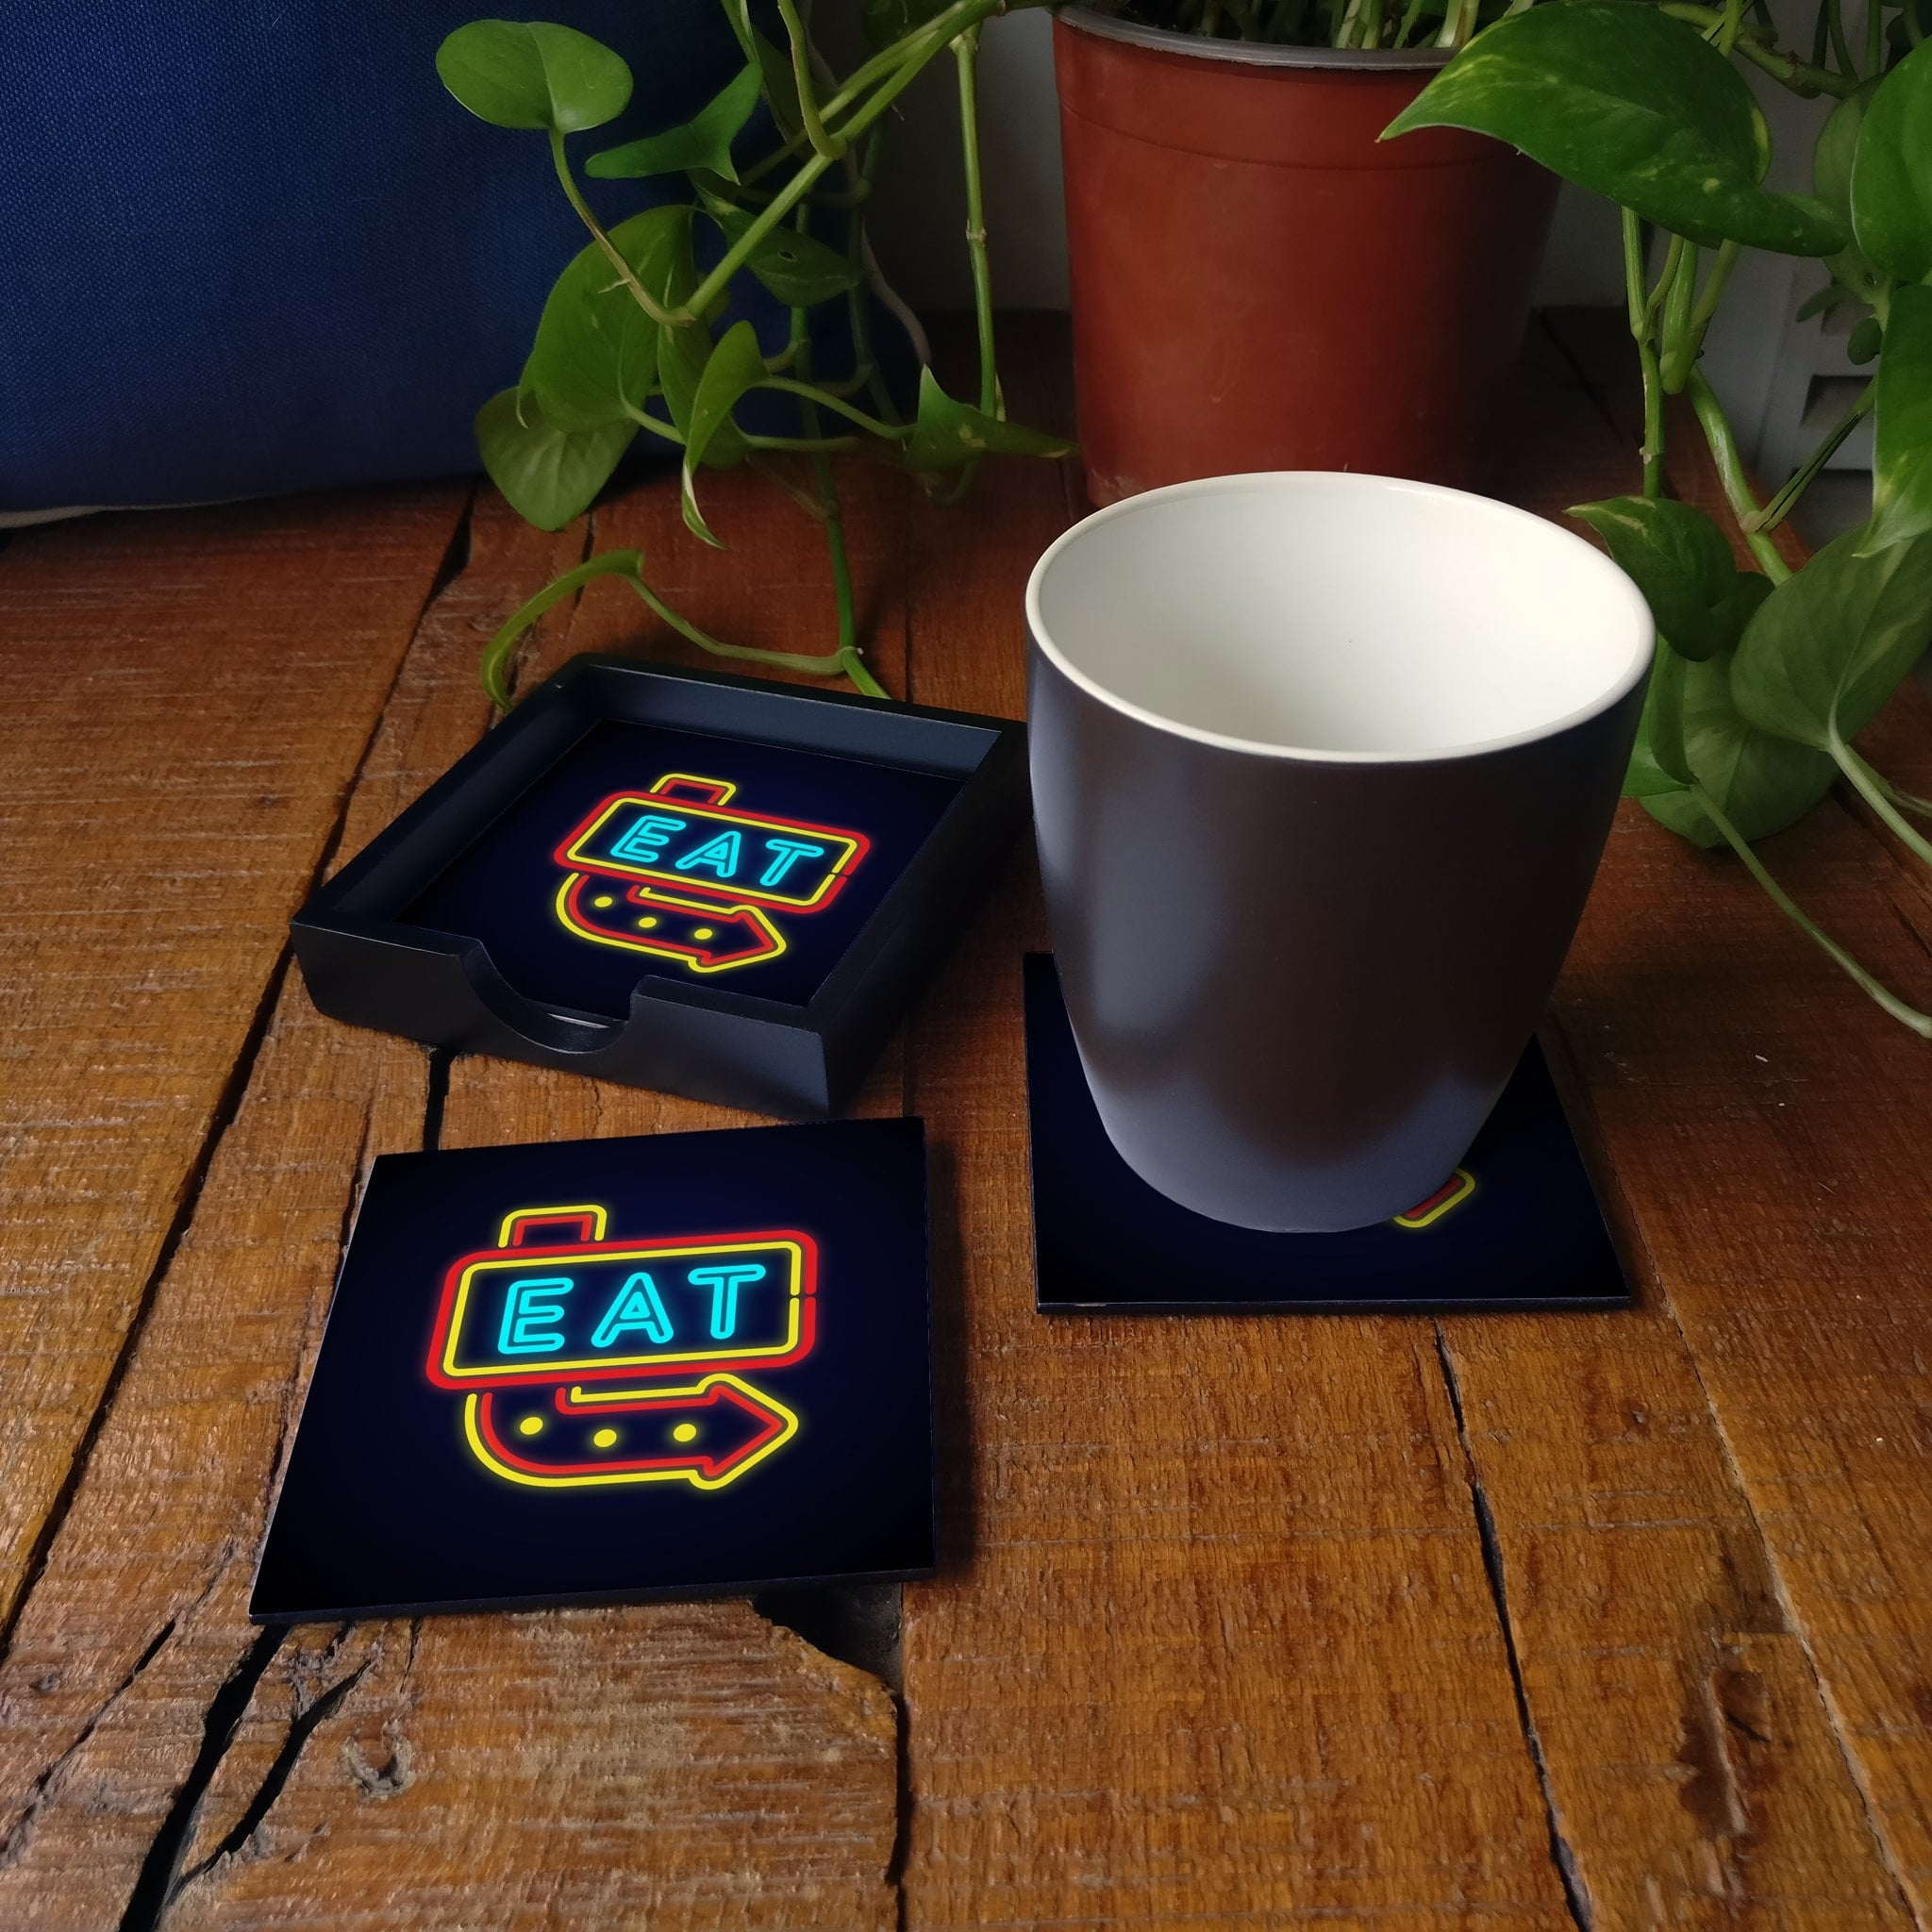 Neon Eat Coaster Set with Box